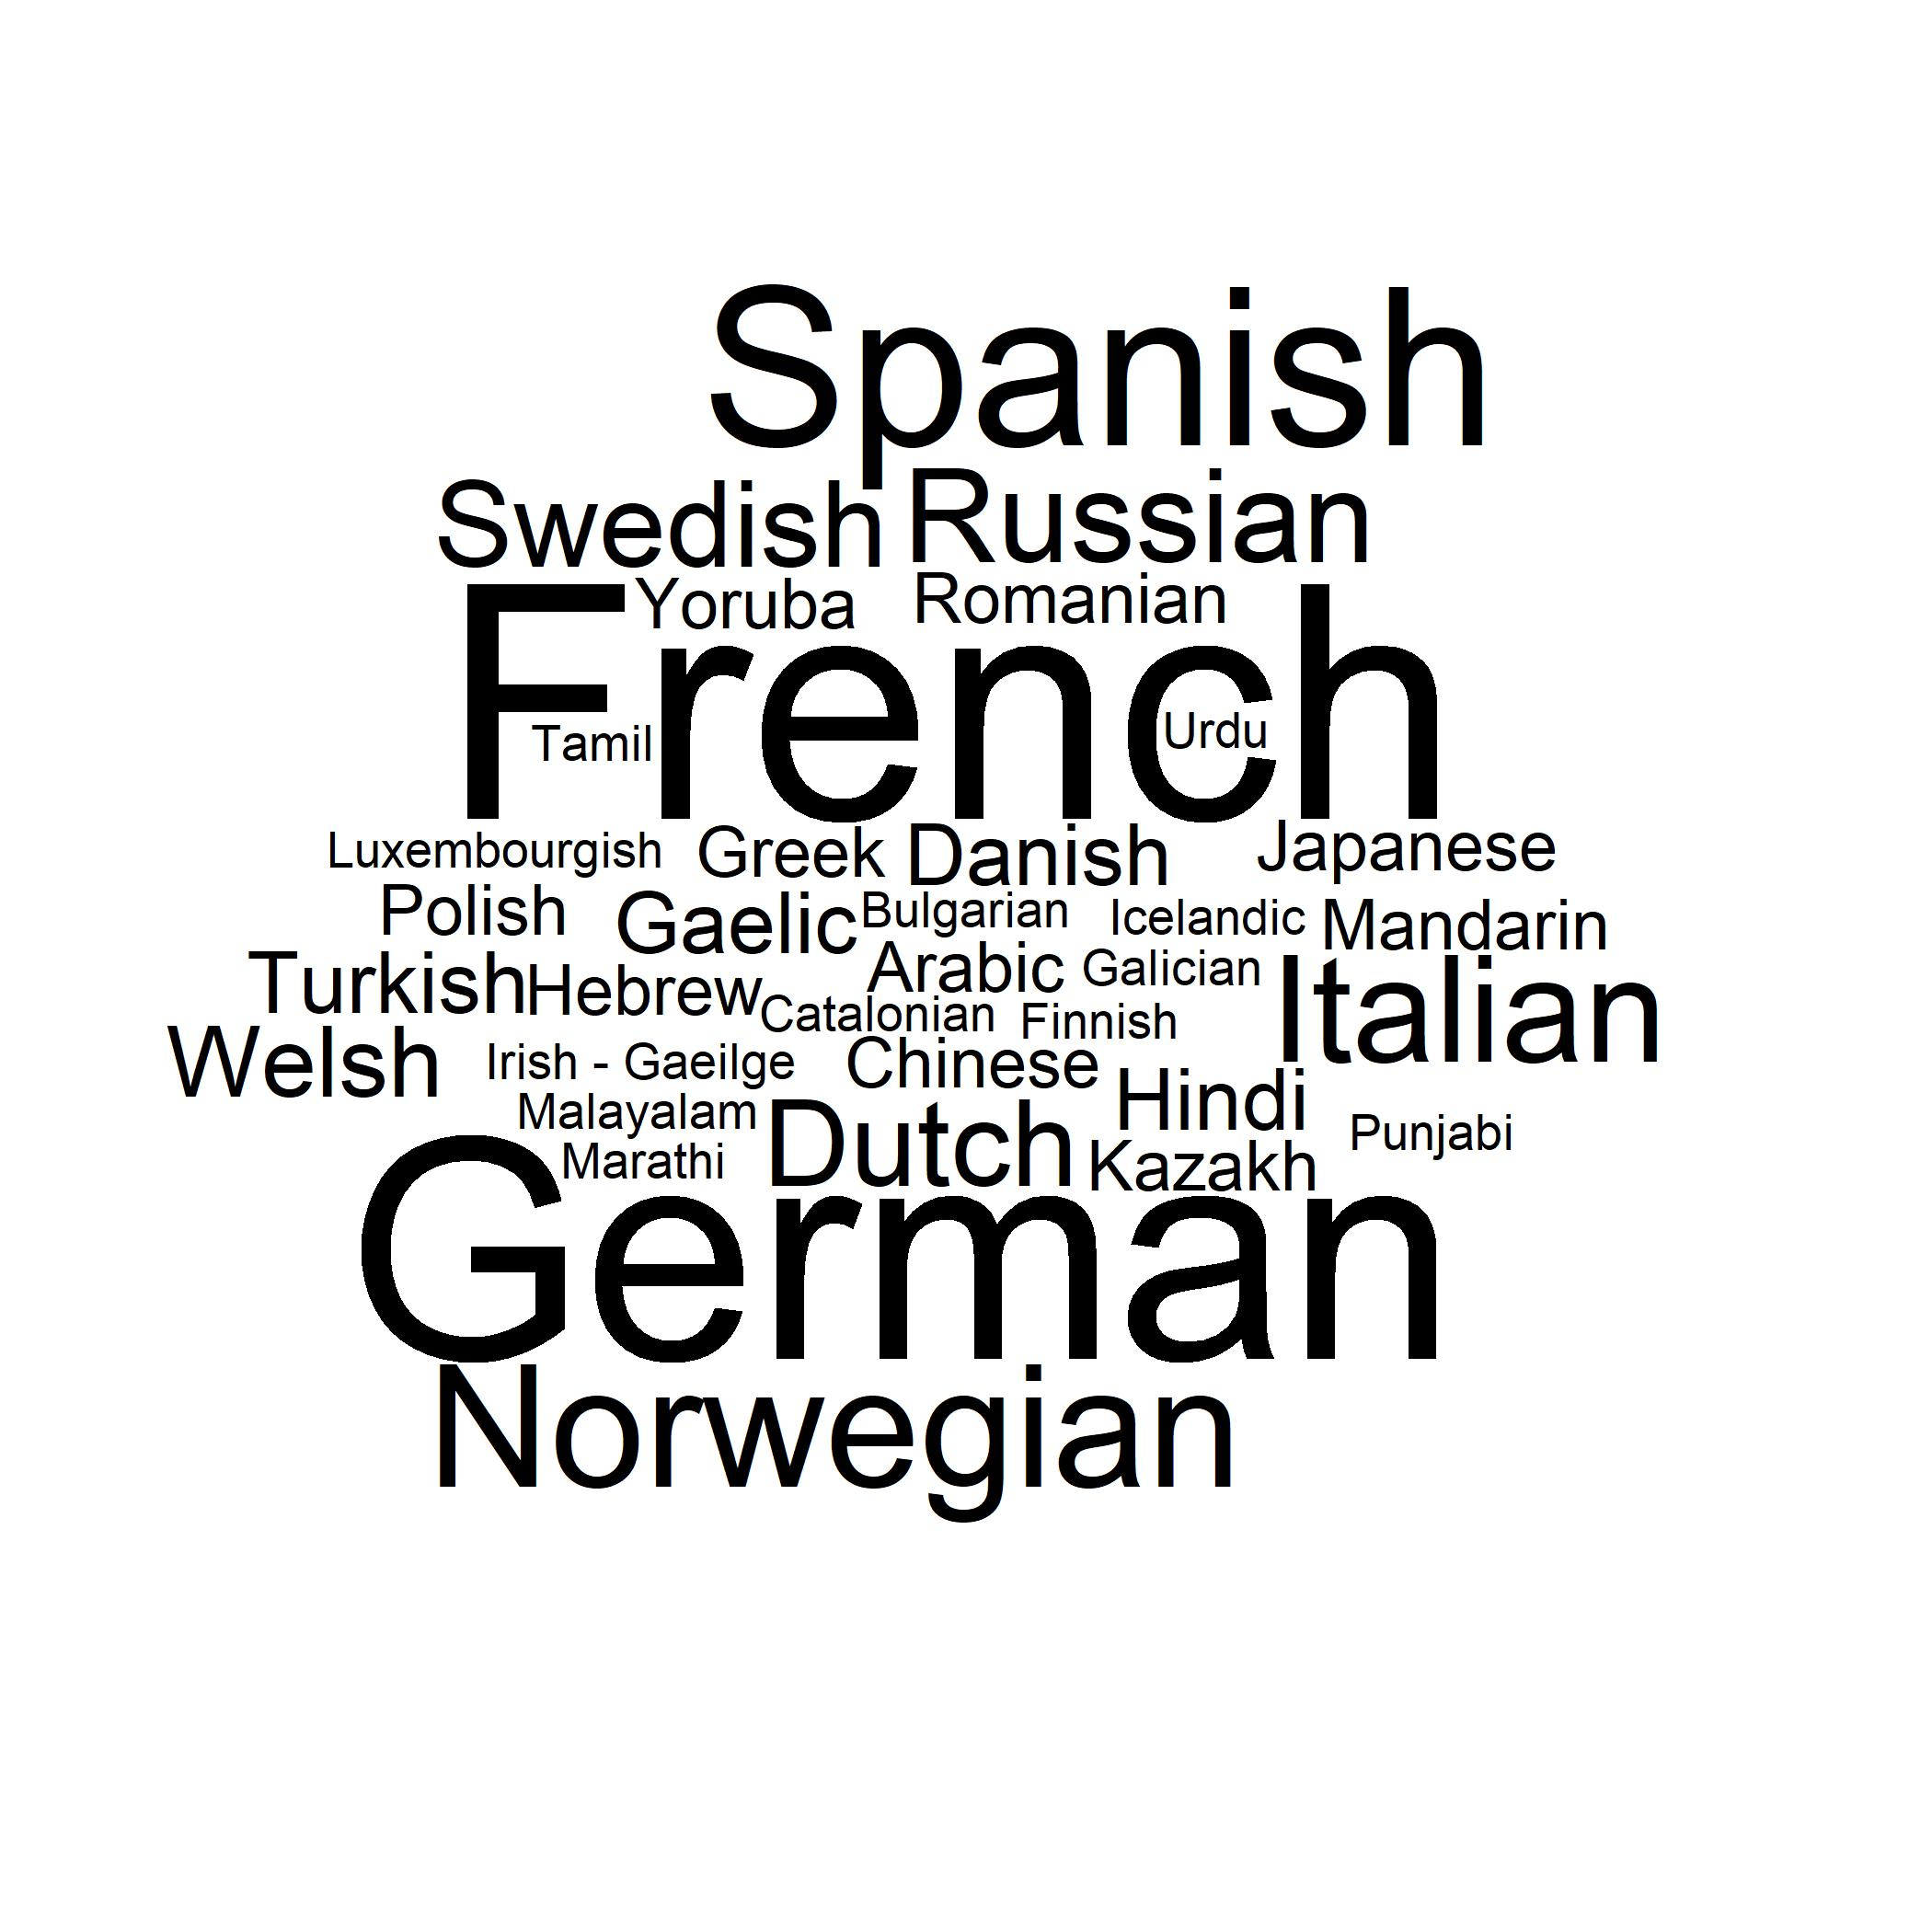 Word cloud showing the languages spoken by UKPN members other than English. French, German and Spanish are most commonly spoken.